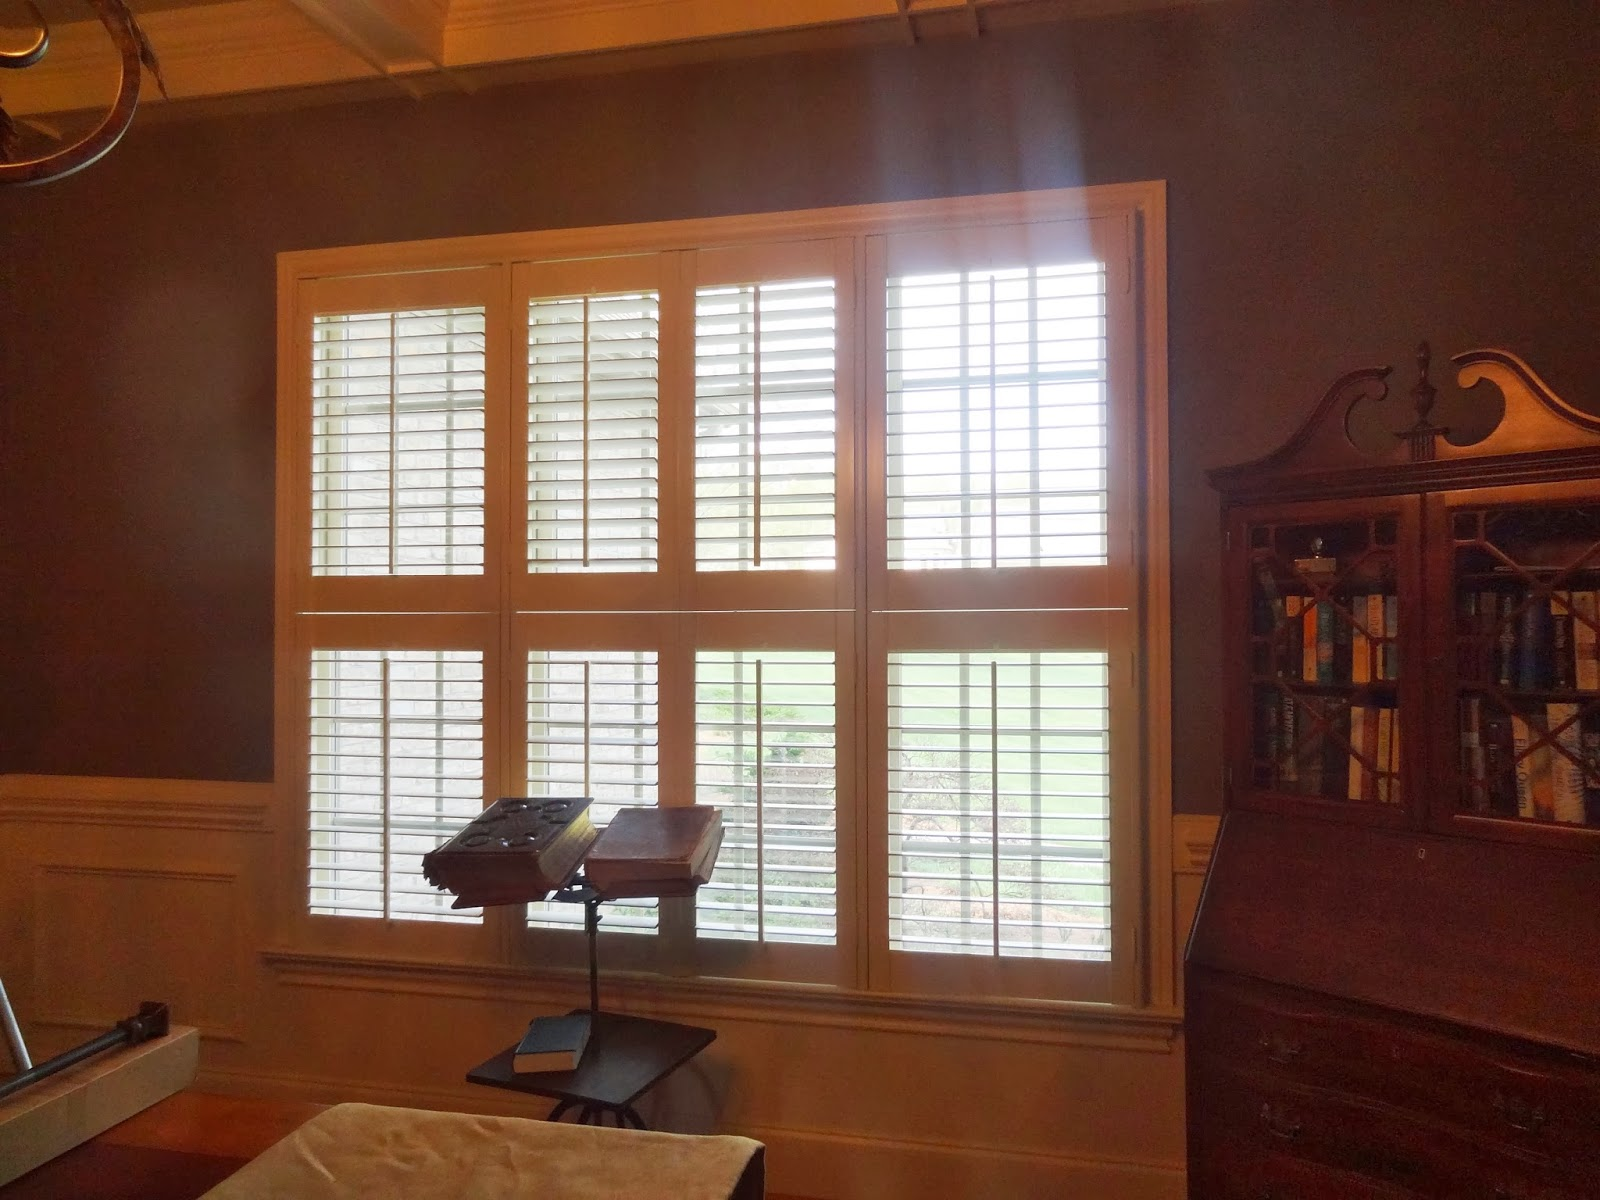 To make your window look larger, your room taller. Consider draperies